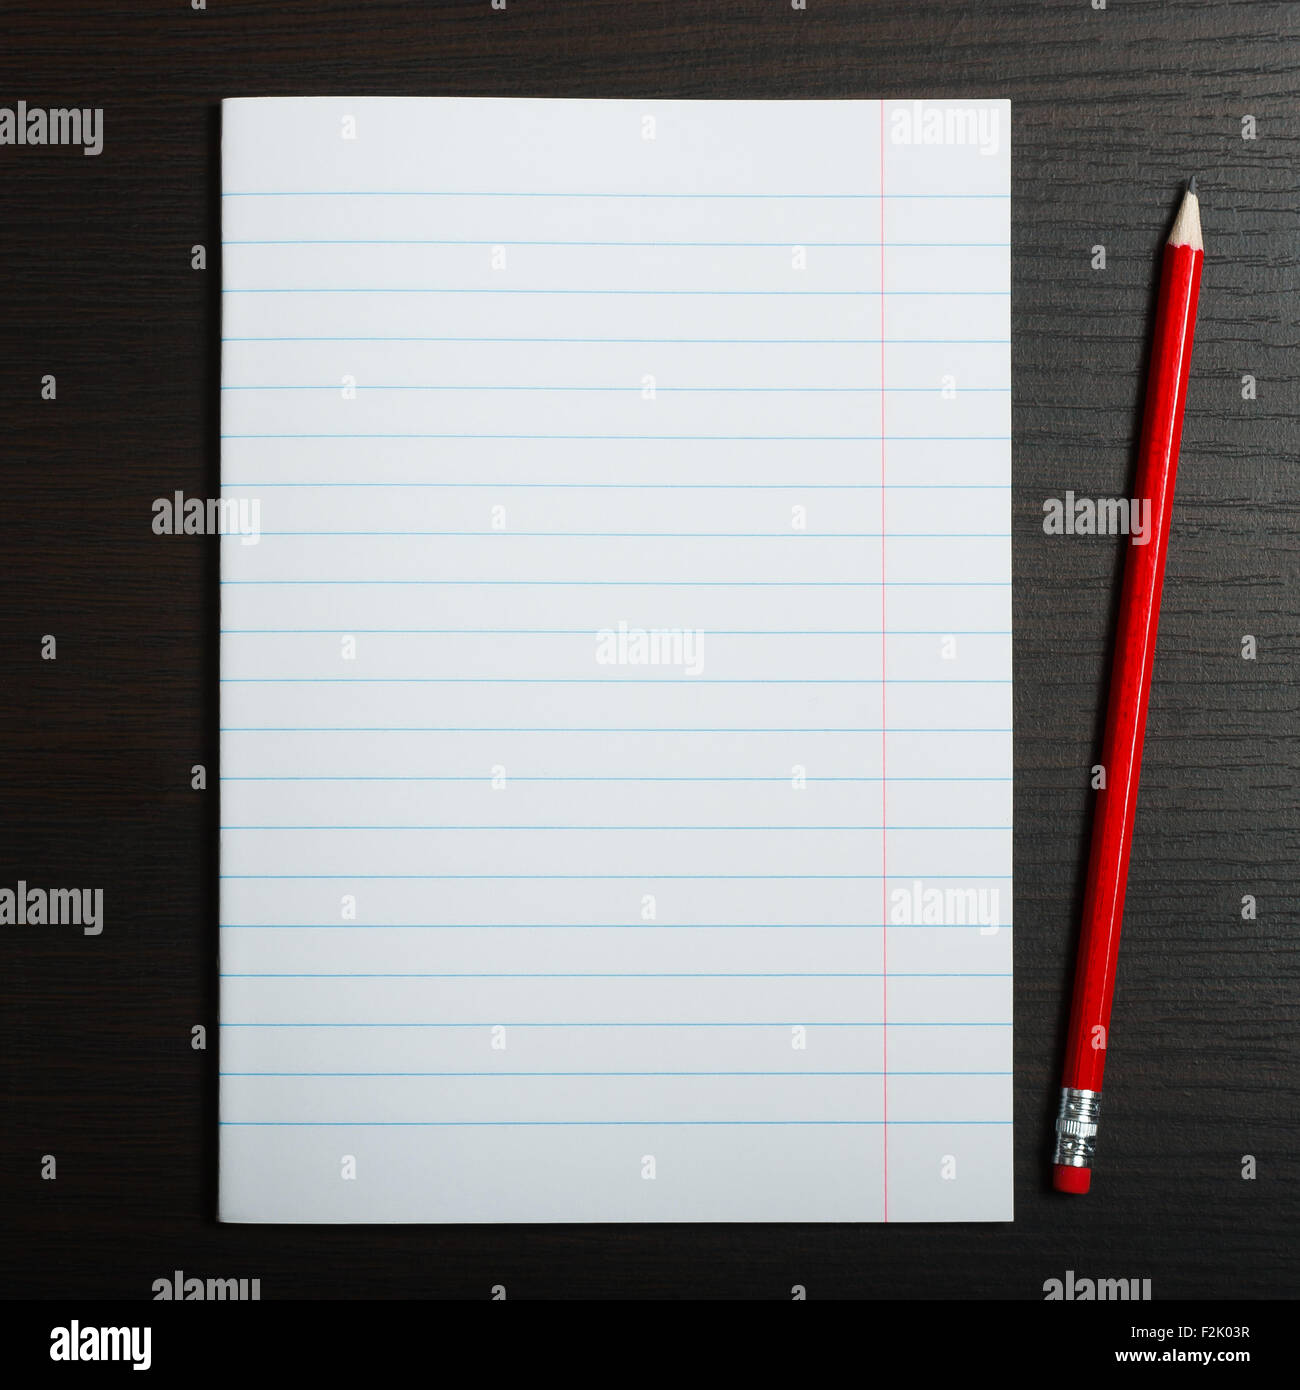 Blank white paper and pencil on wooden desk - Stock Image